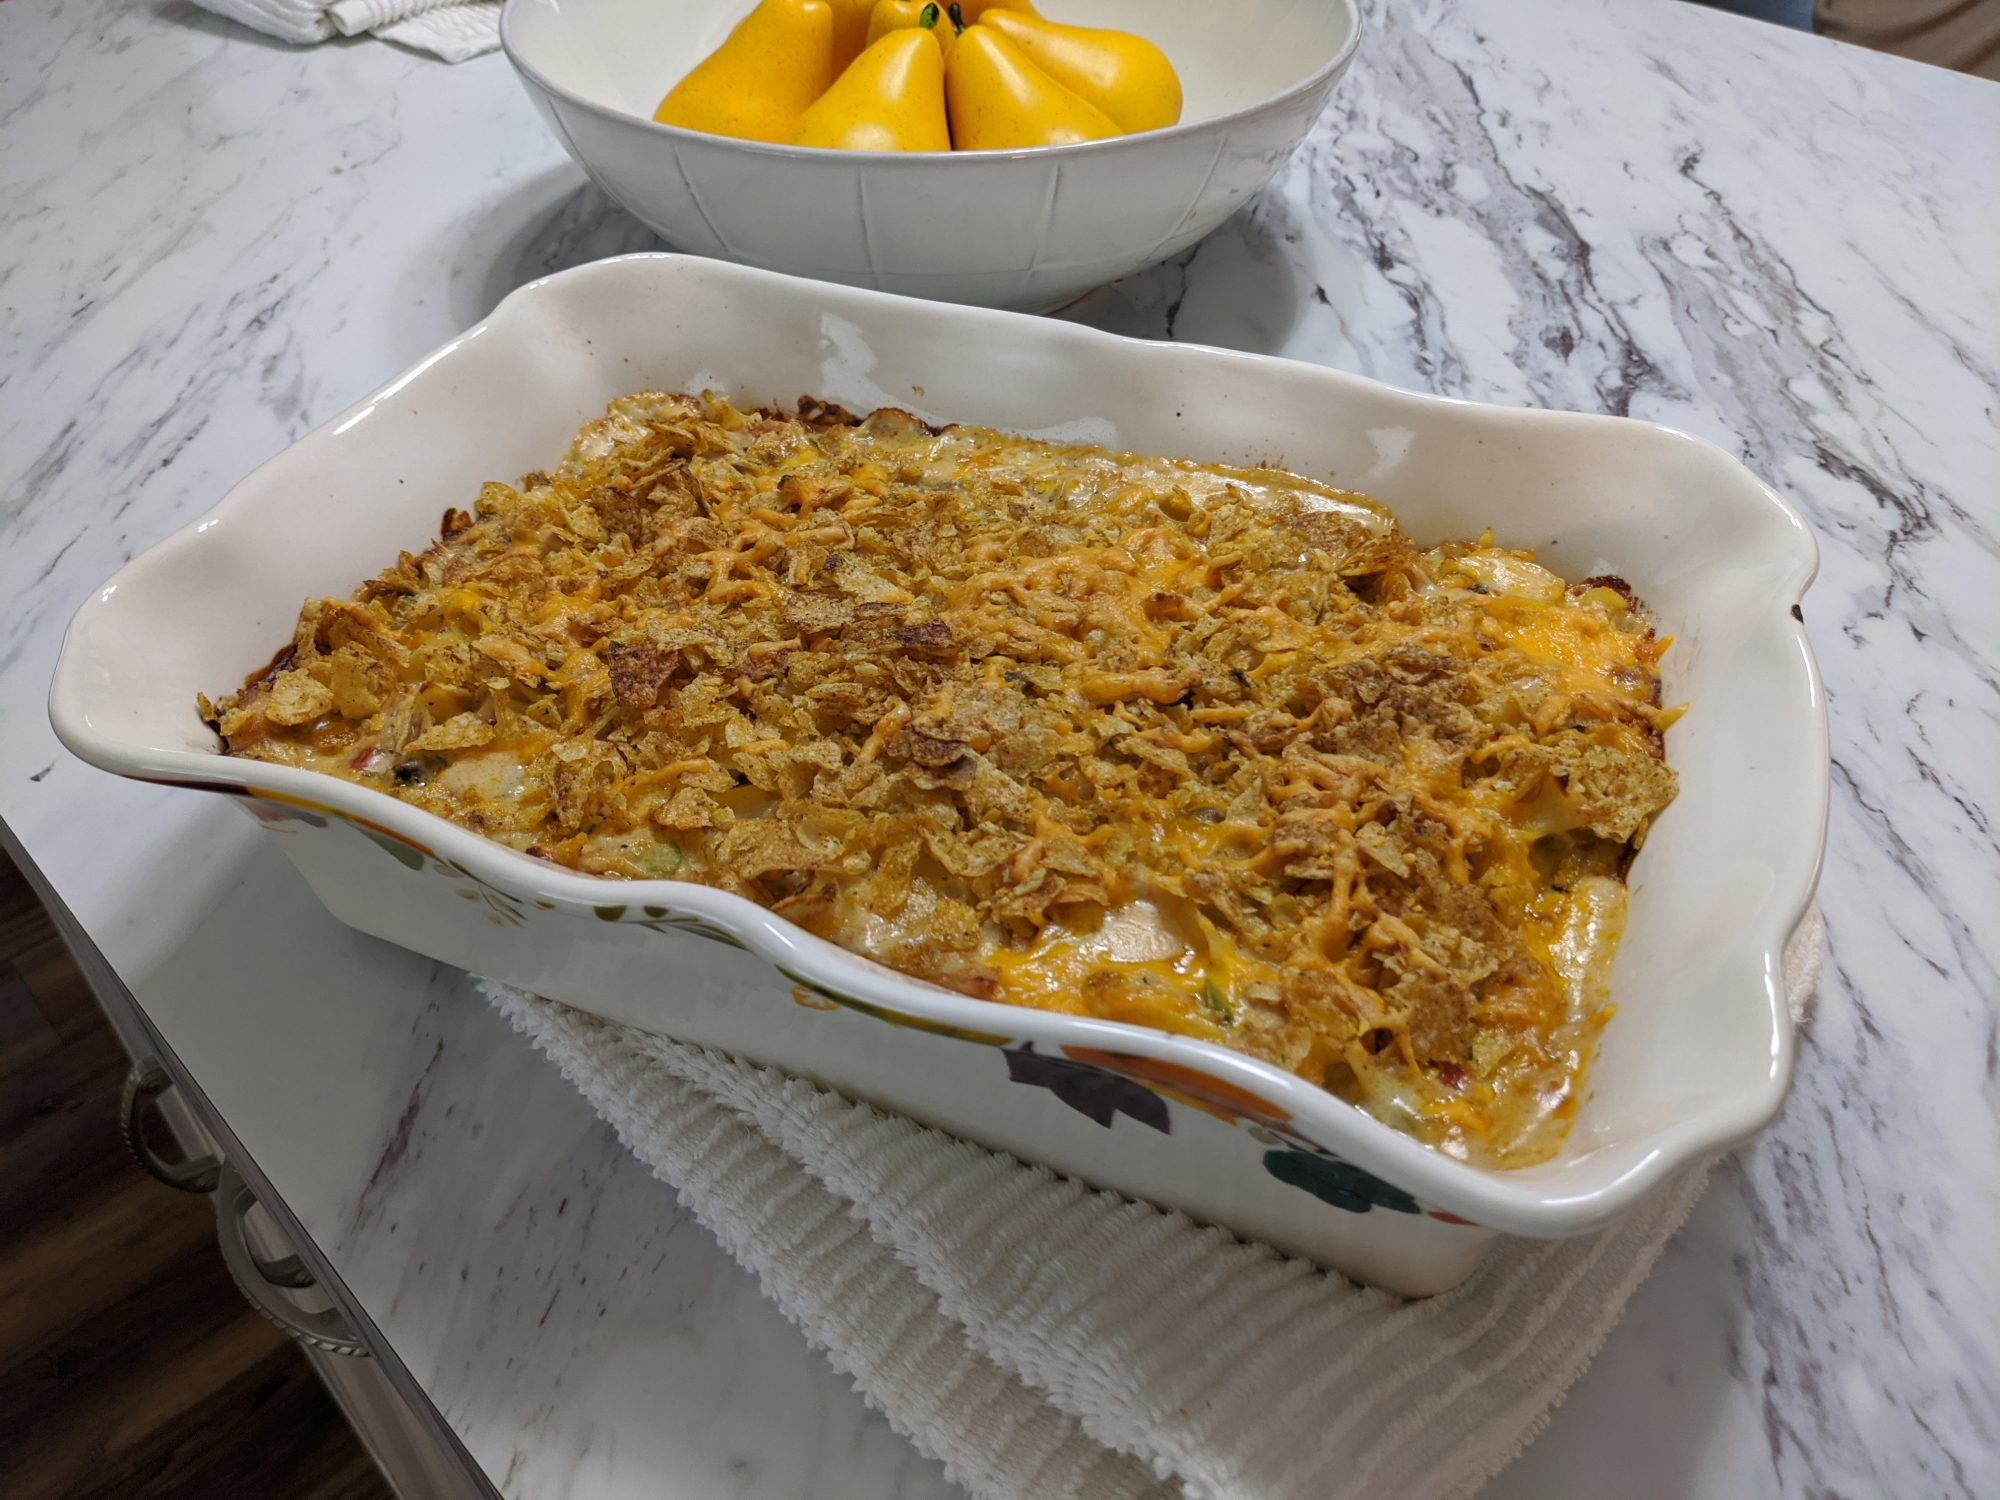 Turkey and noodle casserole in white dish on marble counter top